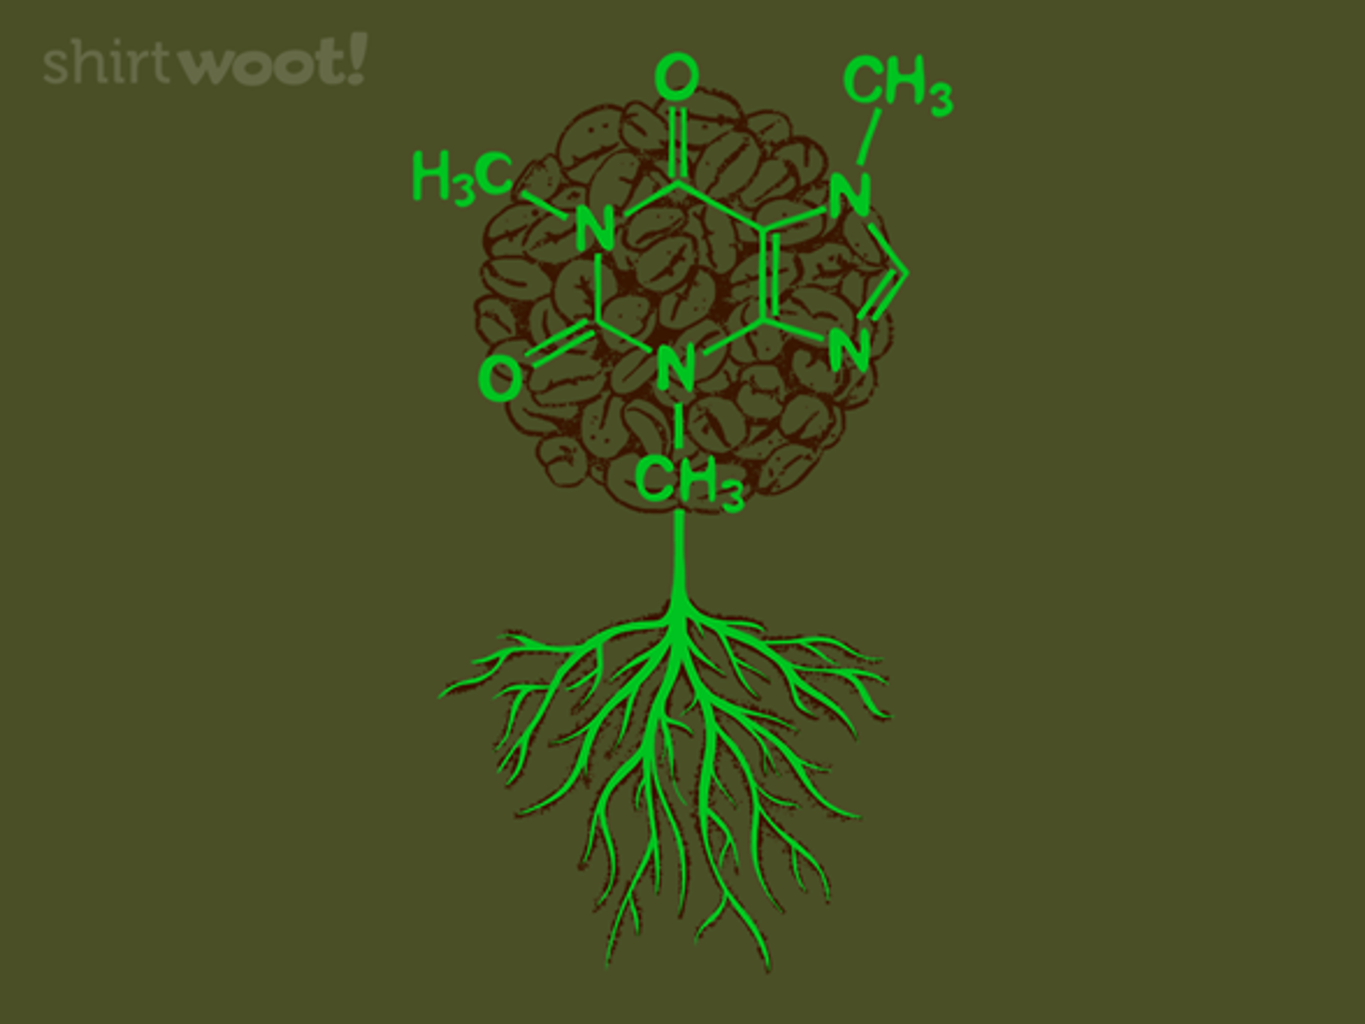 Woot!: The Happiness Tree